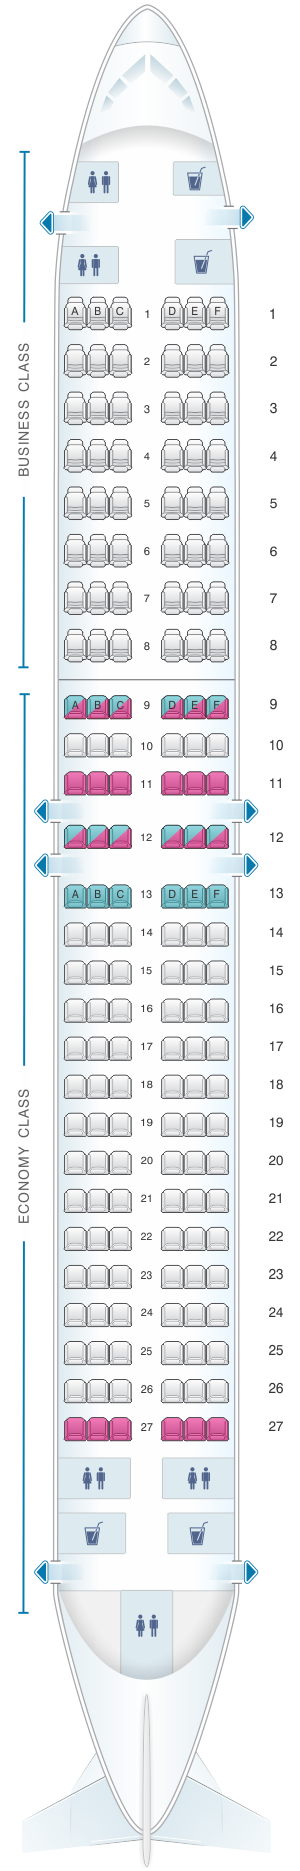 Seat map for Air Algerie Boeing B737-800 config 1